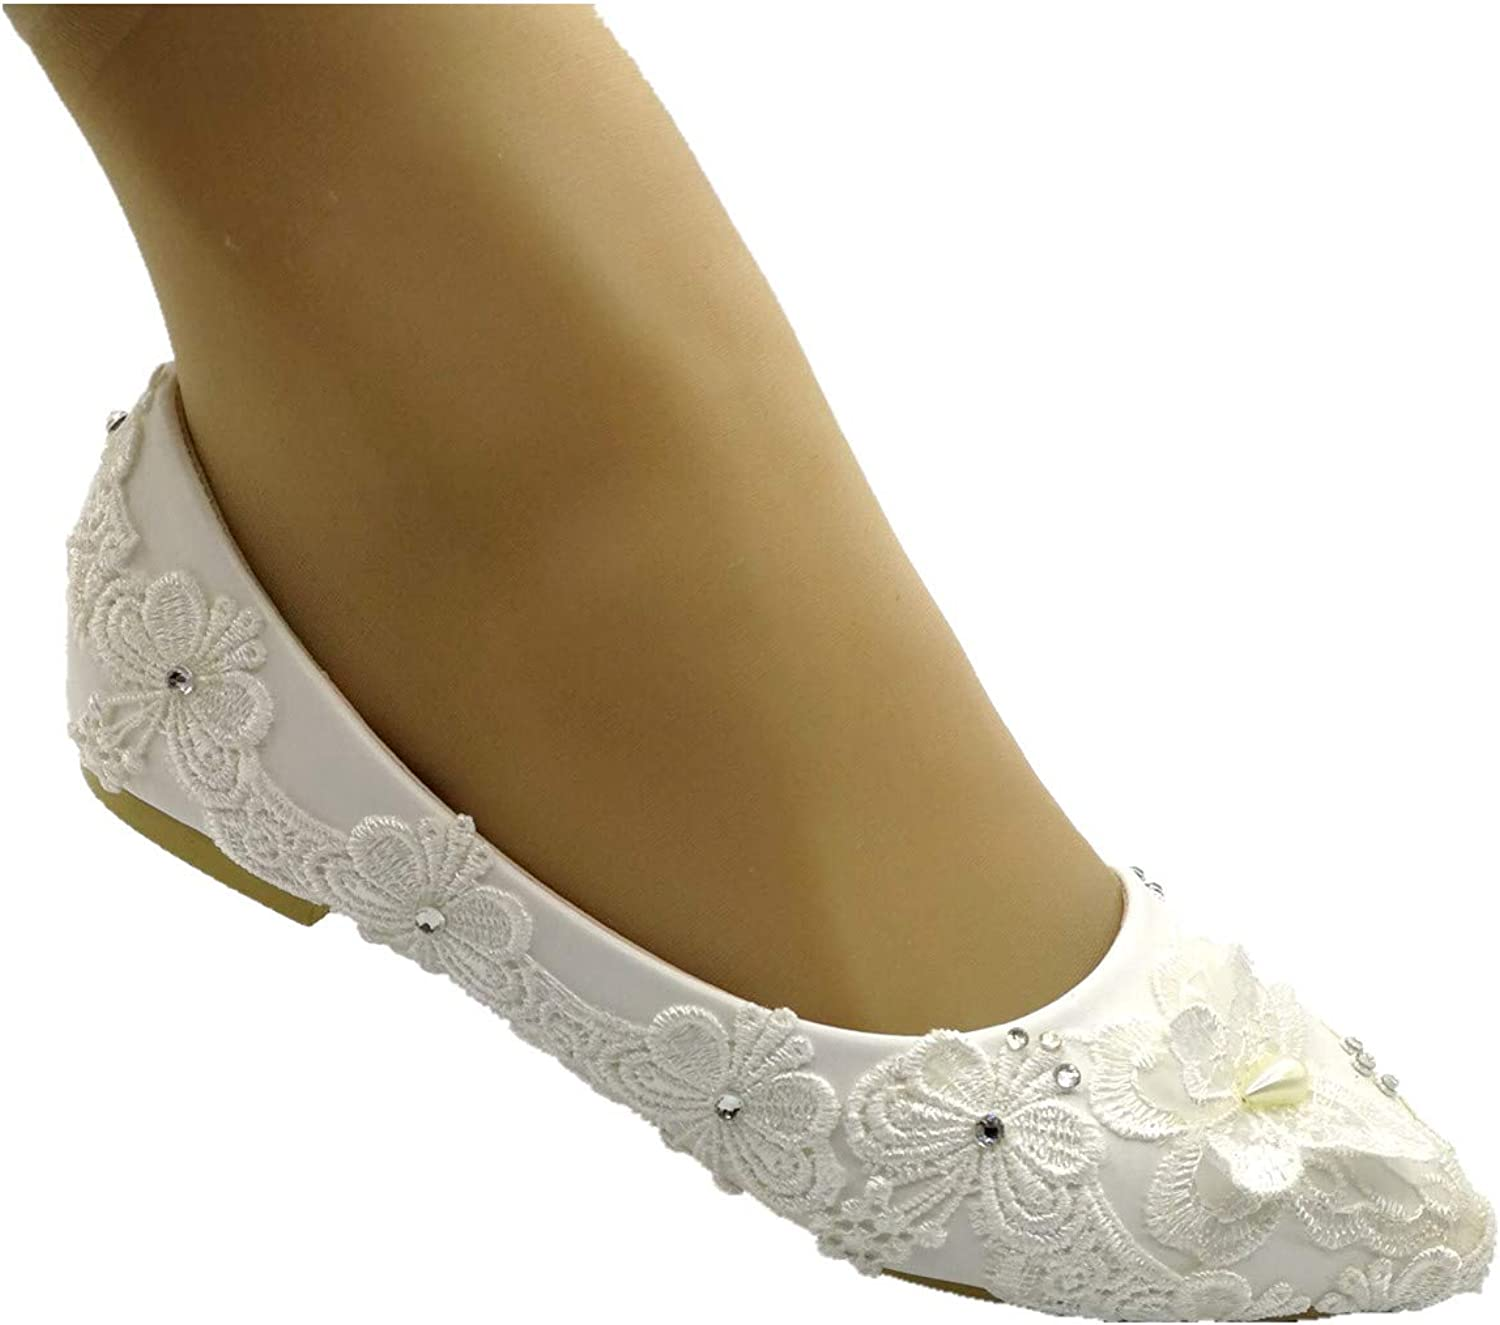 LACE ELEMENTS Handmade Wedding shoes Ballet Flats with Ribbon Low Heel shoes Bridal Flat shoes Bridesmaids Gift